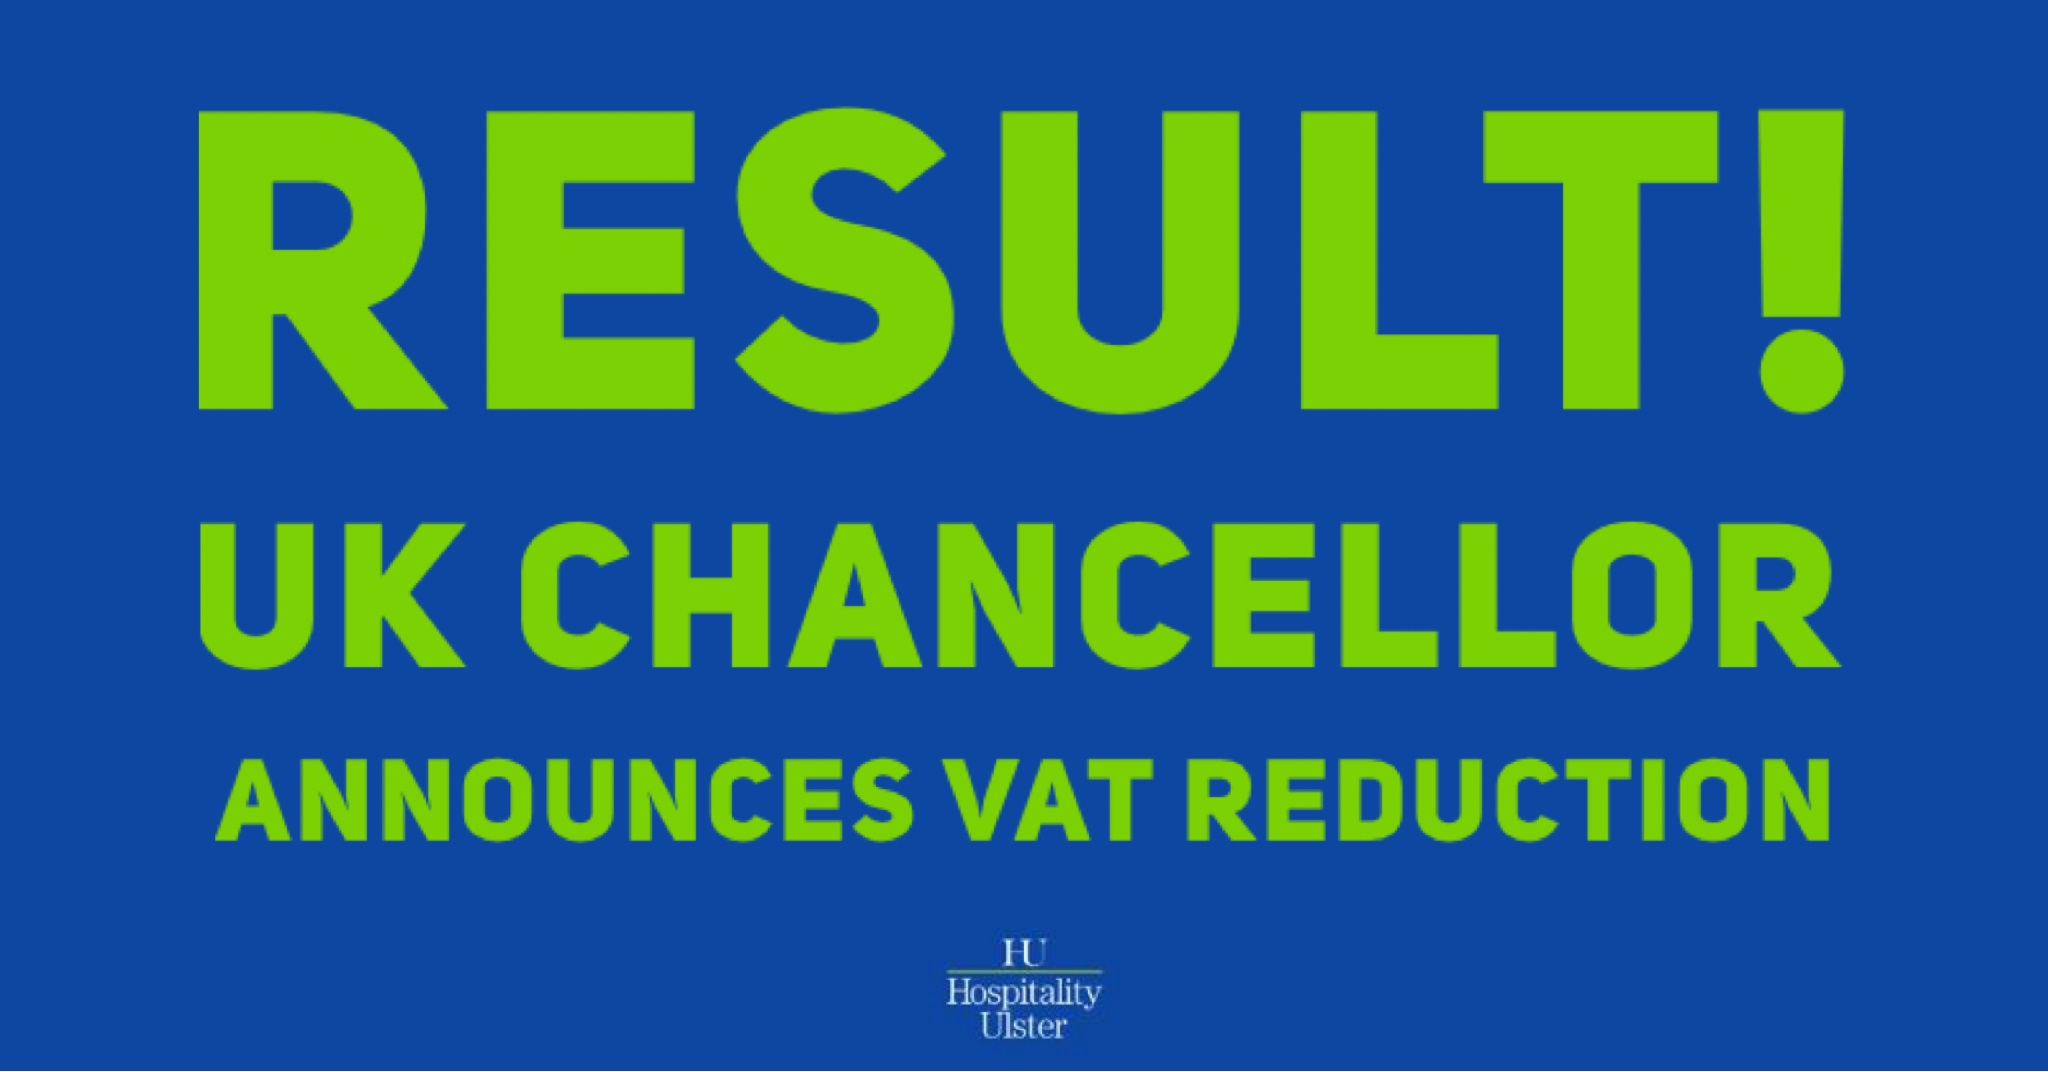 RESULT AS UK CHANCELLOR ANNOUNCES VAT REDUCTION